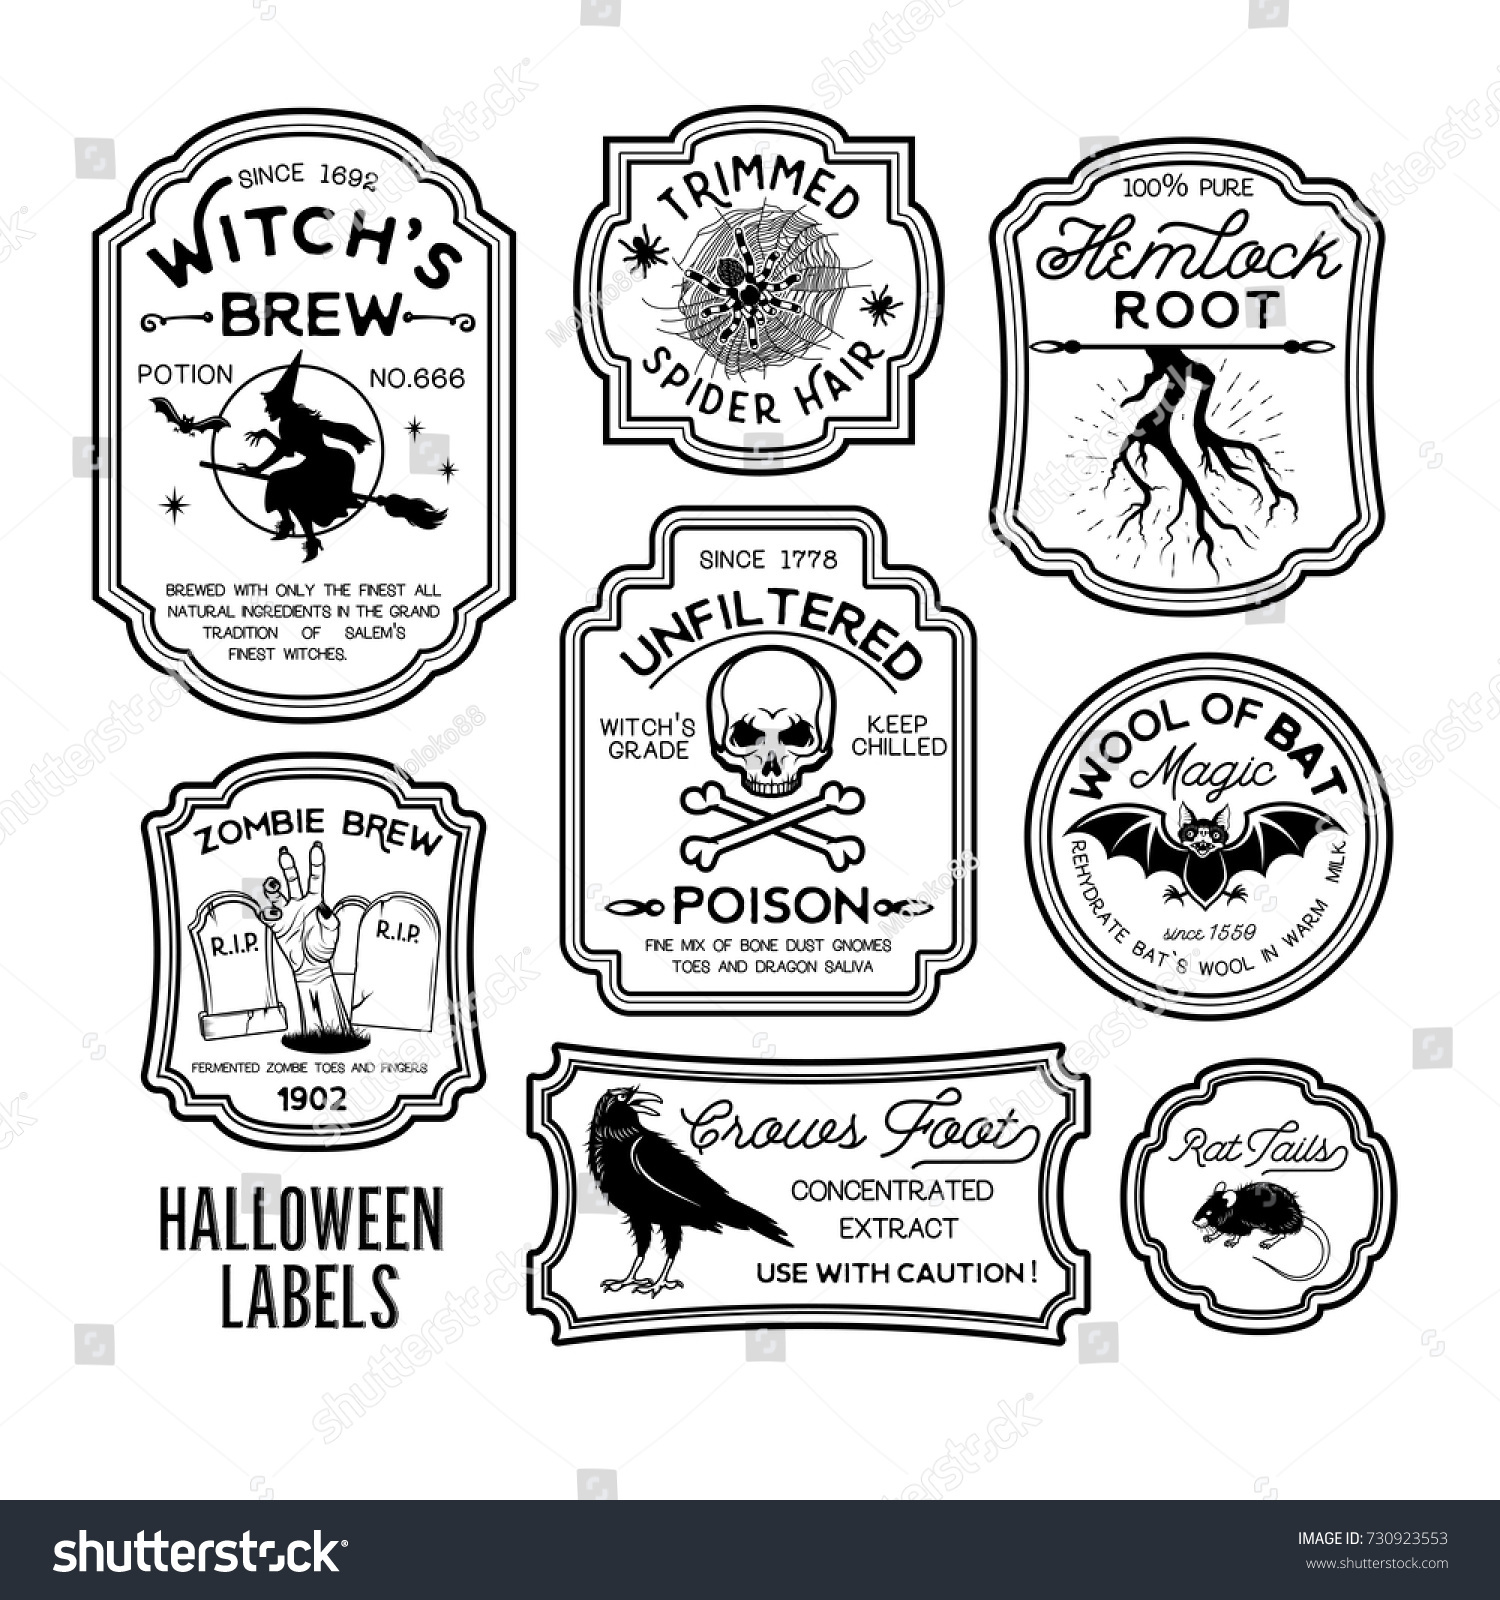 Halloween Potion Worksheets